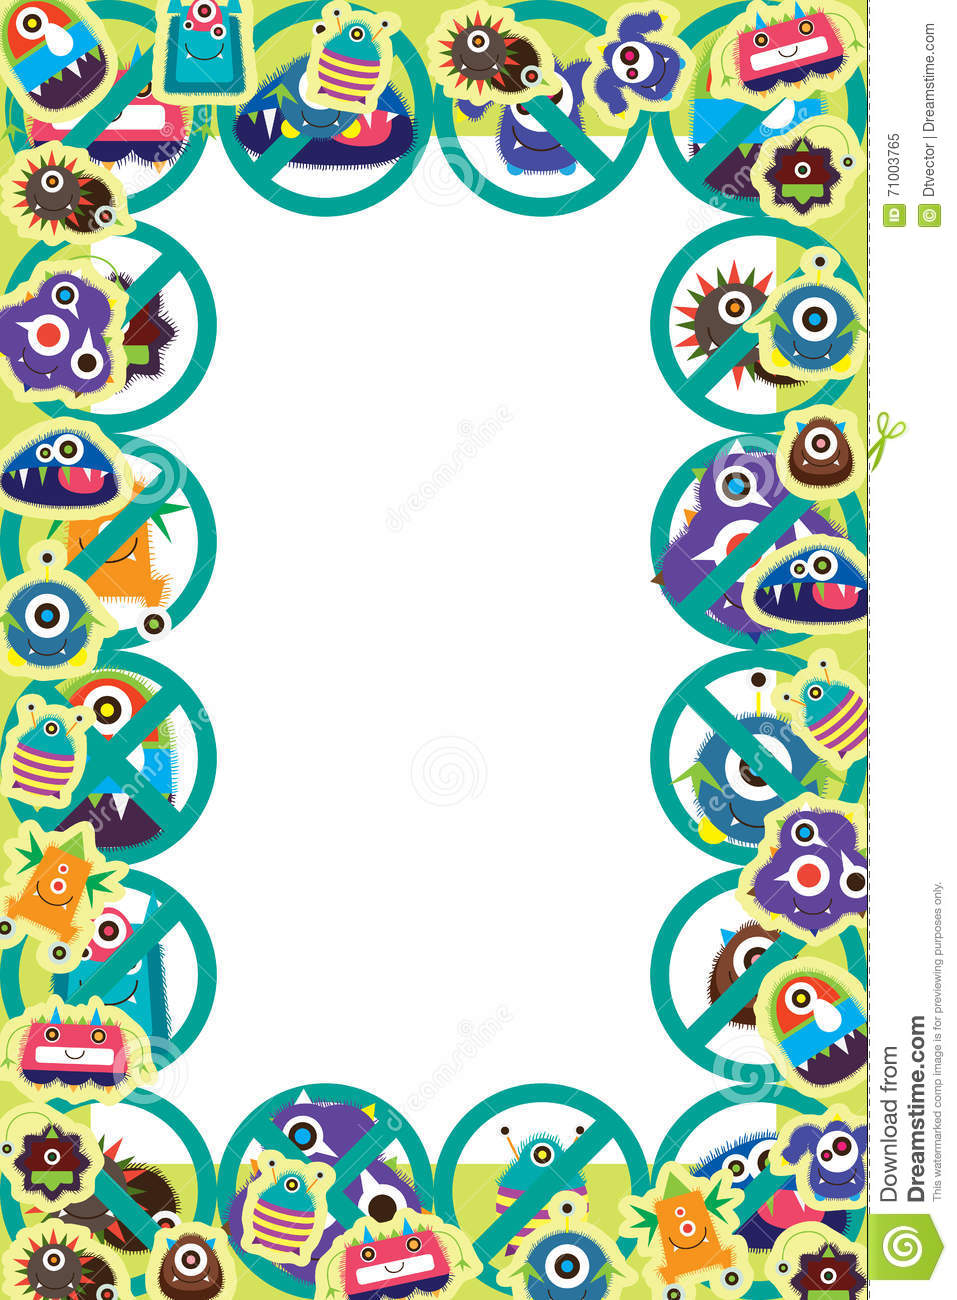 White Backgrounds With Colorful Borders Virus sticker frame st...